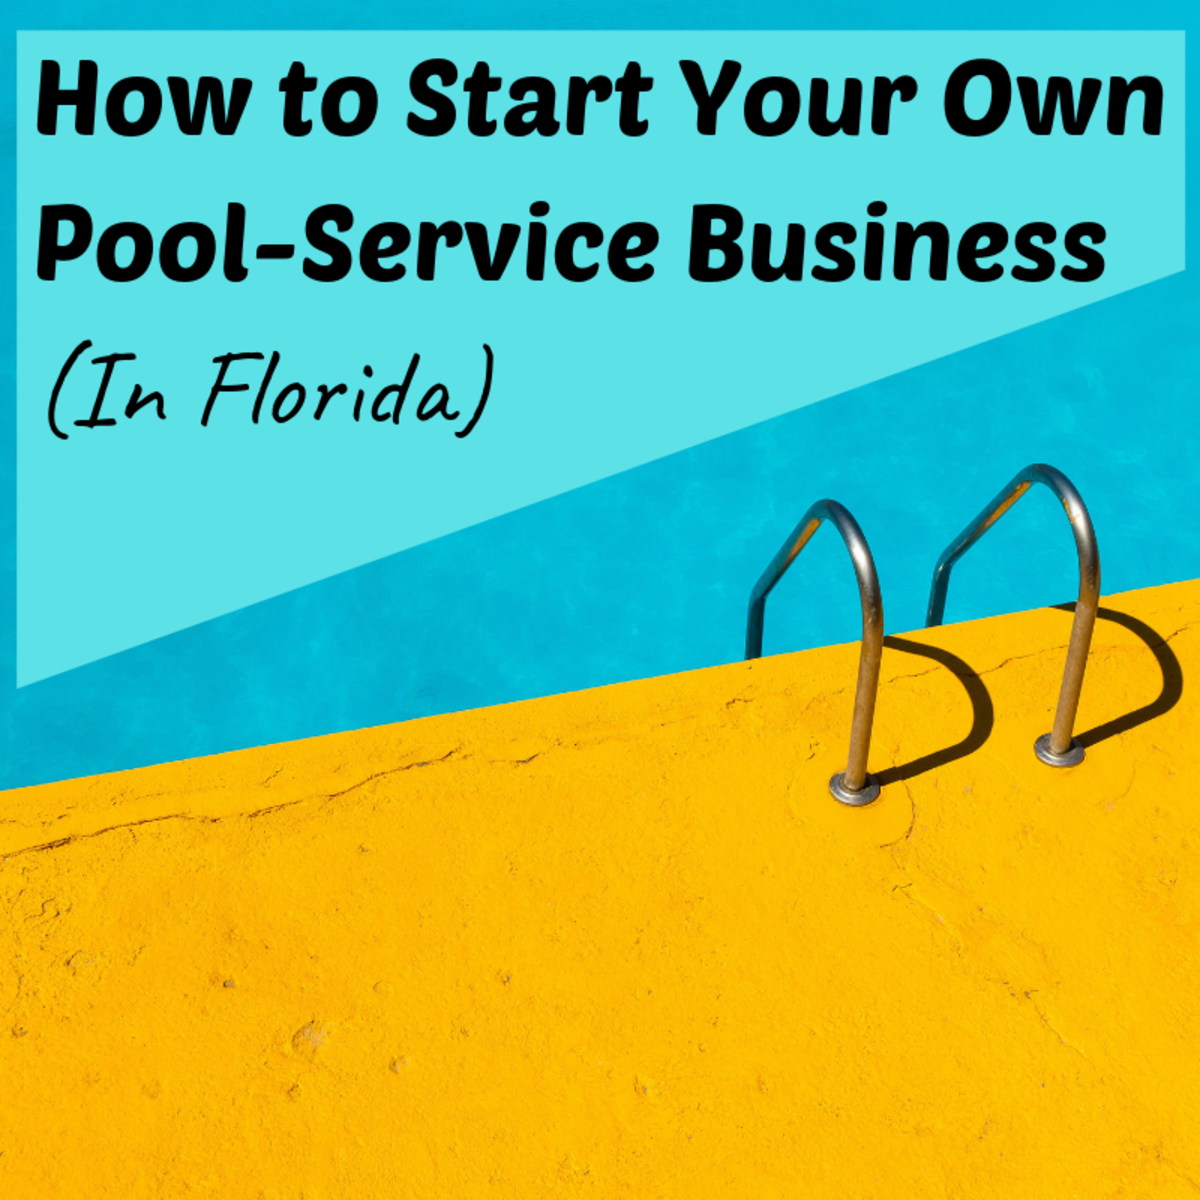 How to Start a Pool-Cleaning and Service Business in Florida